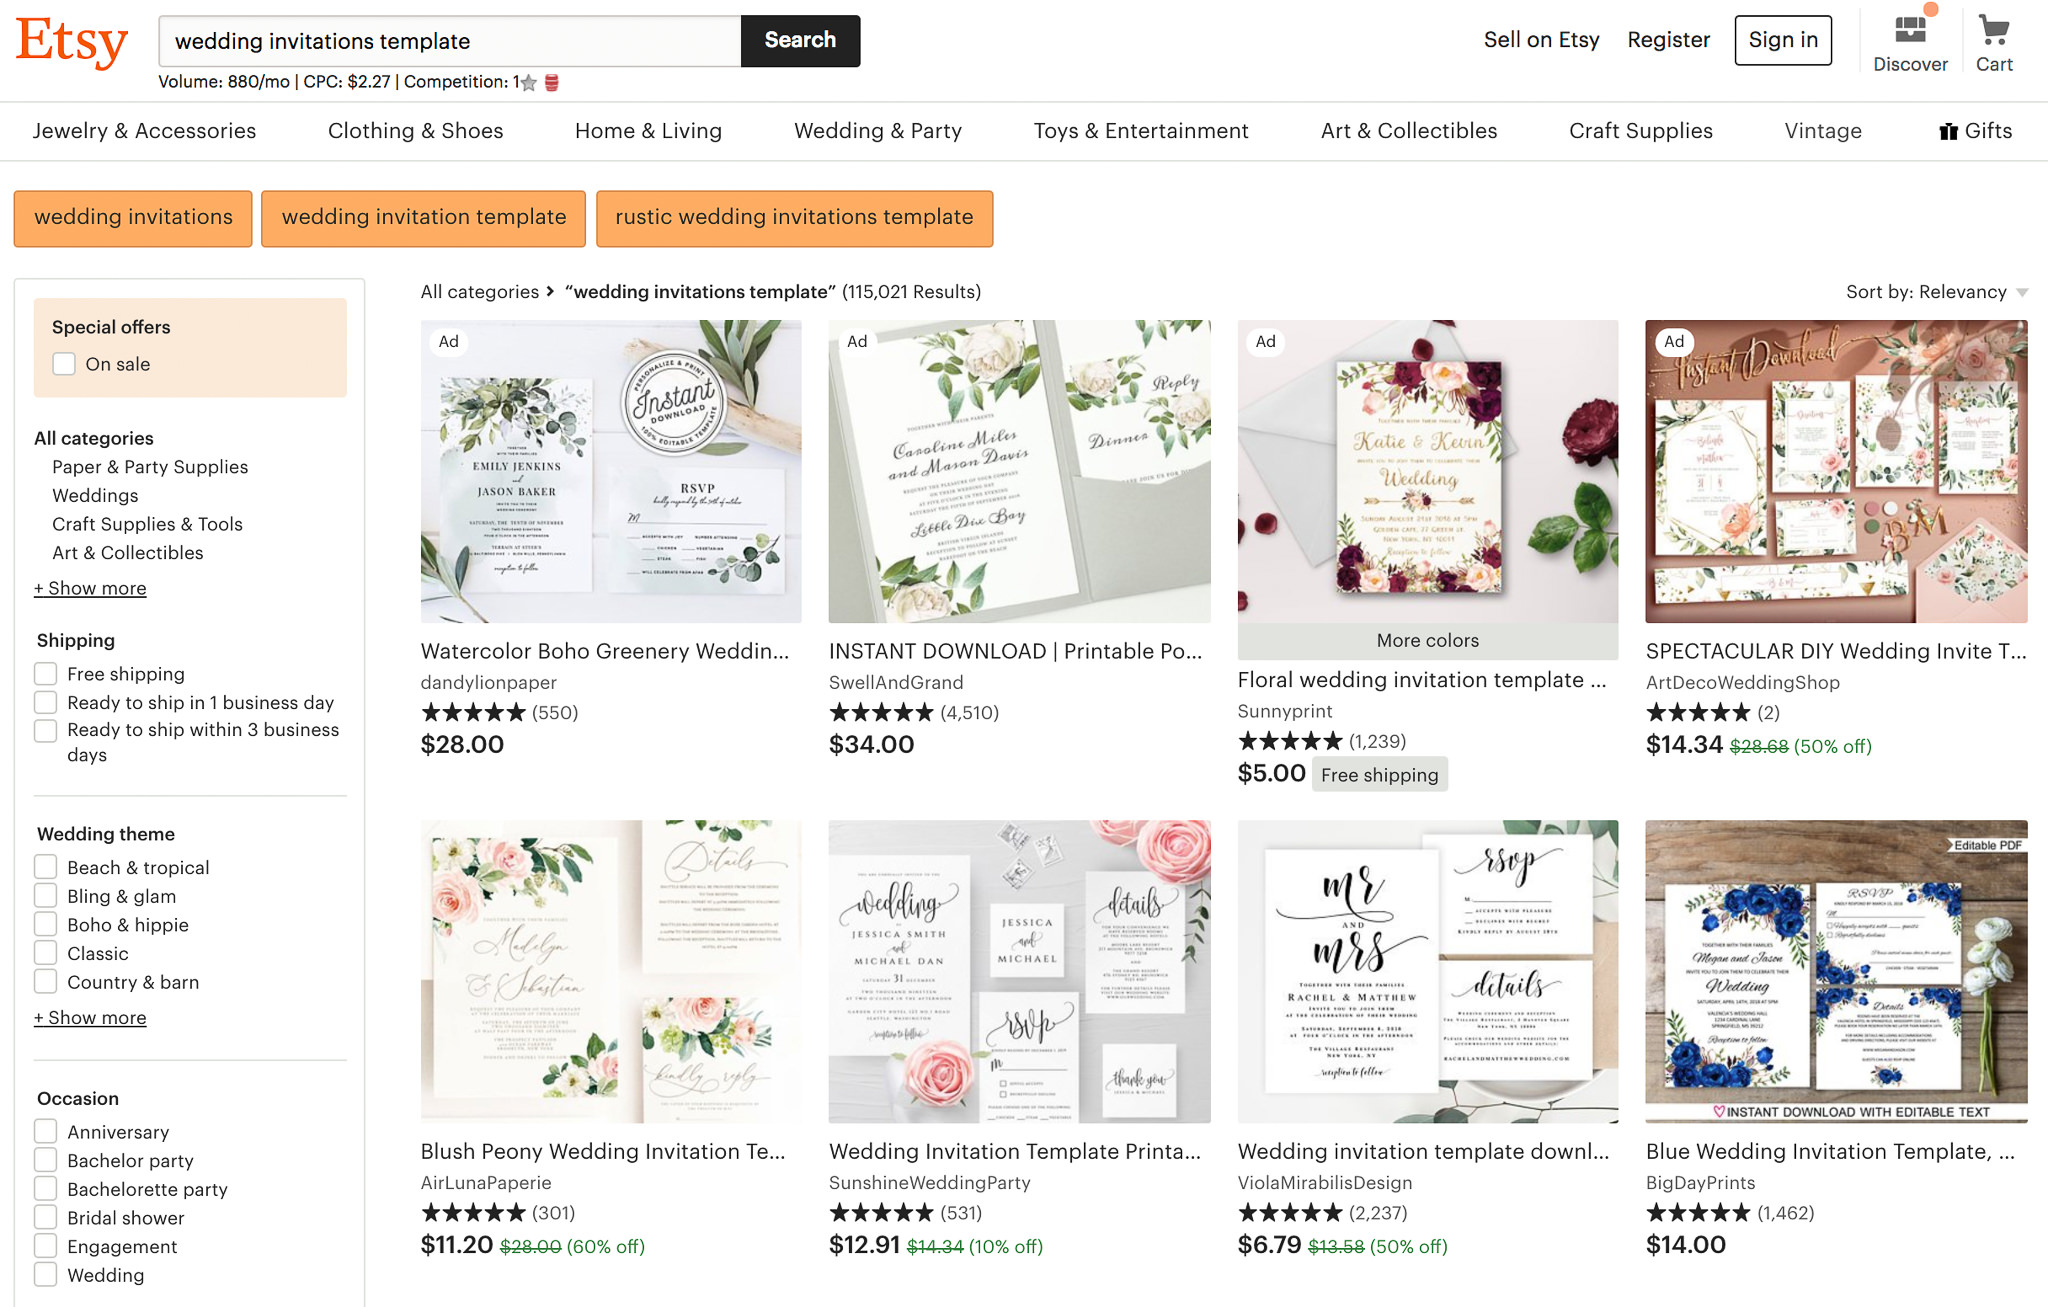 There are hundreds of options to choose from so finding an invitation template on Etsy shouldn't be too hard.